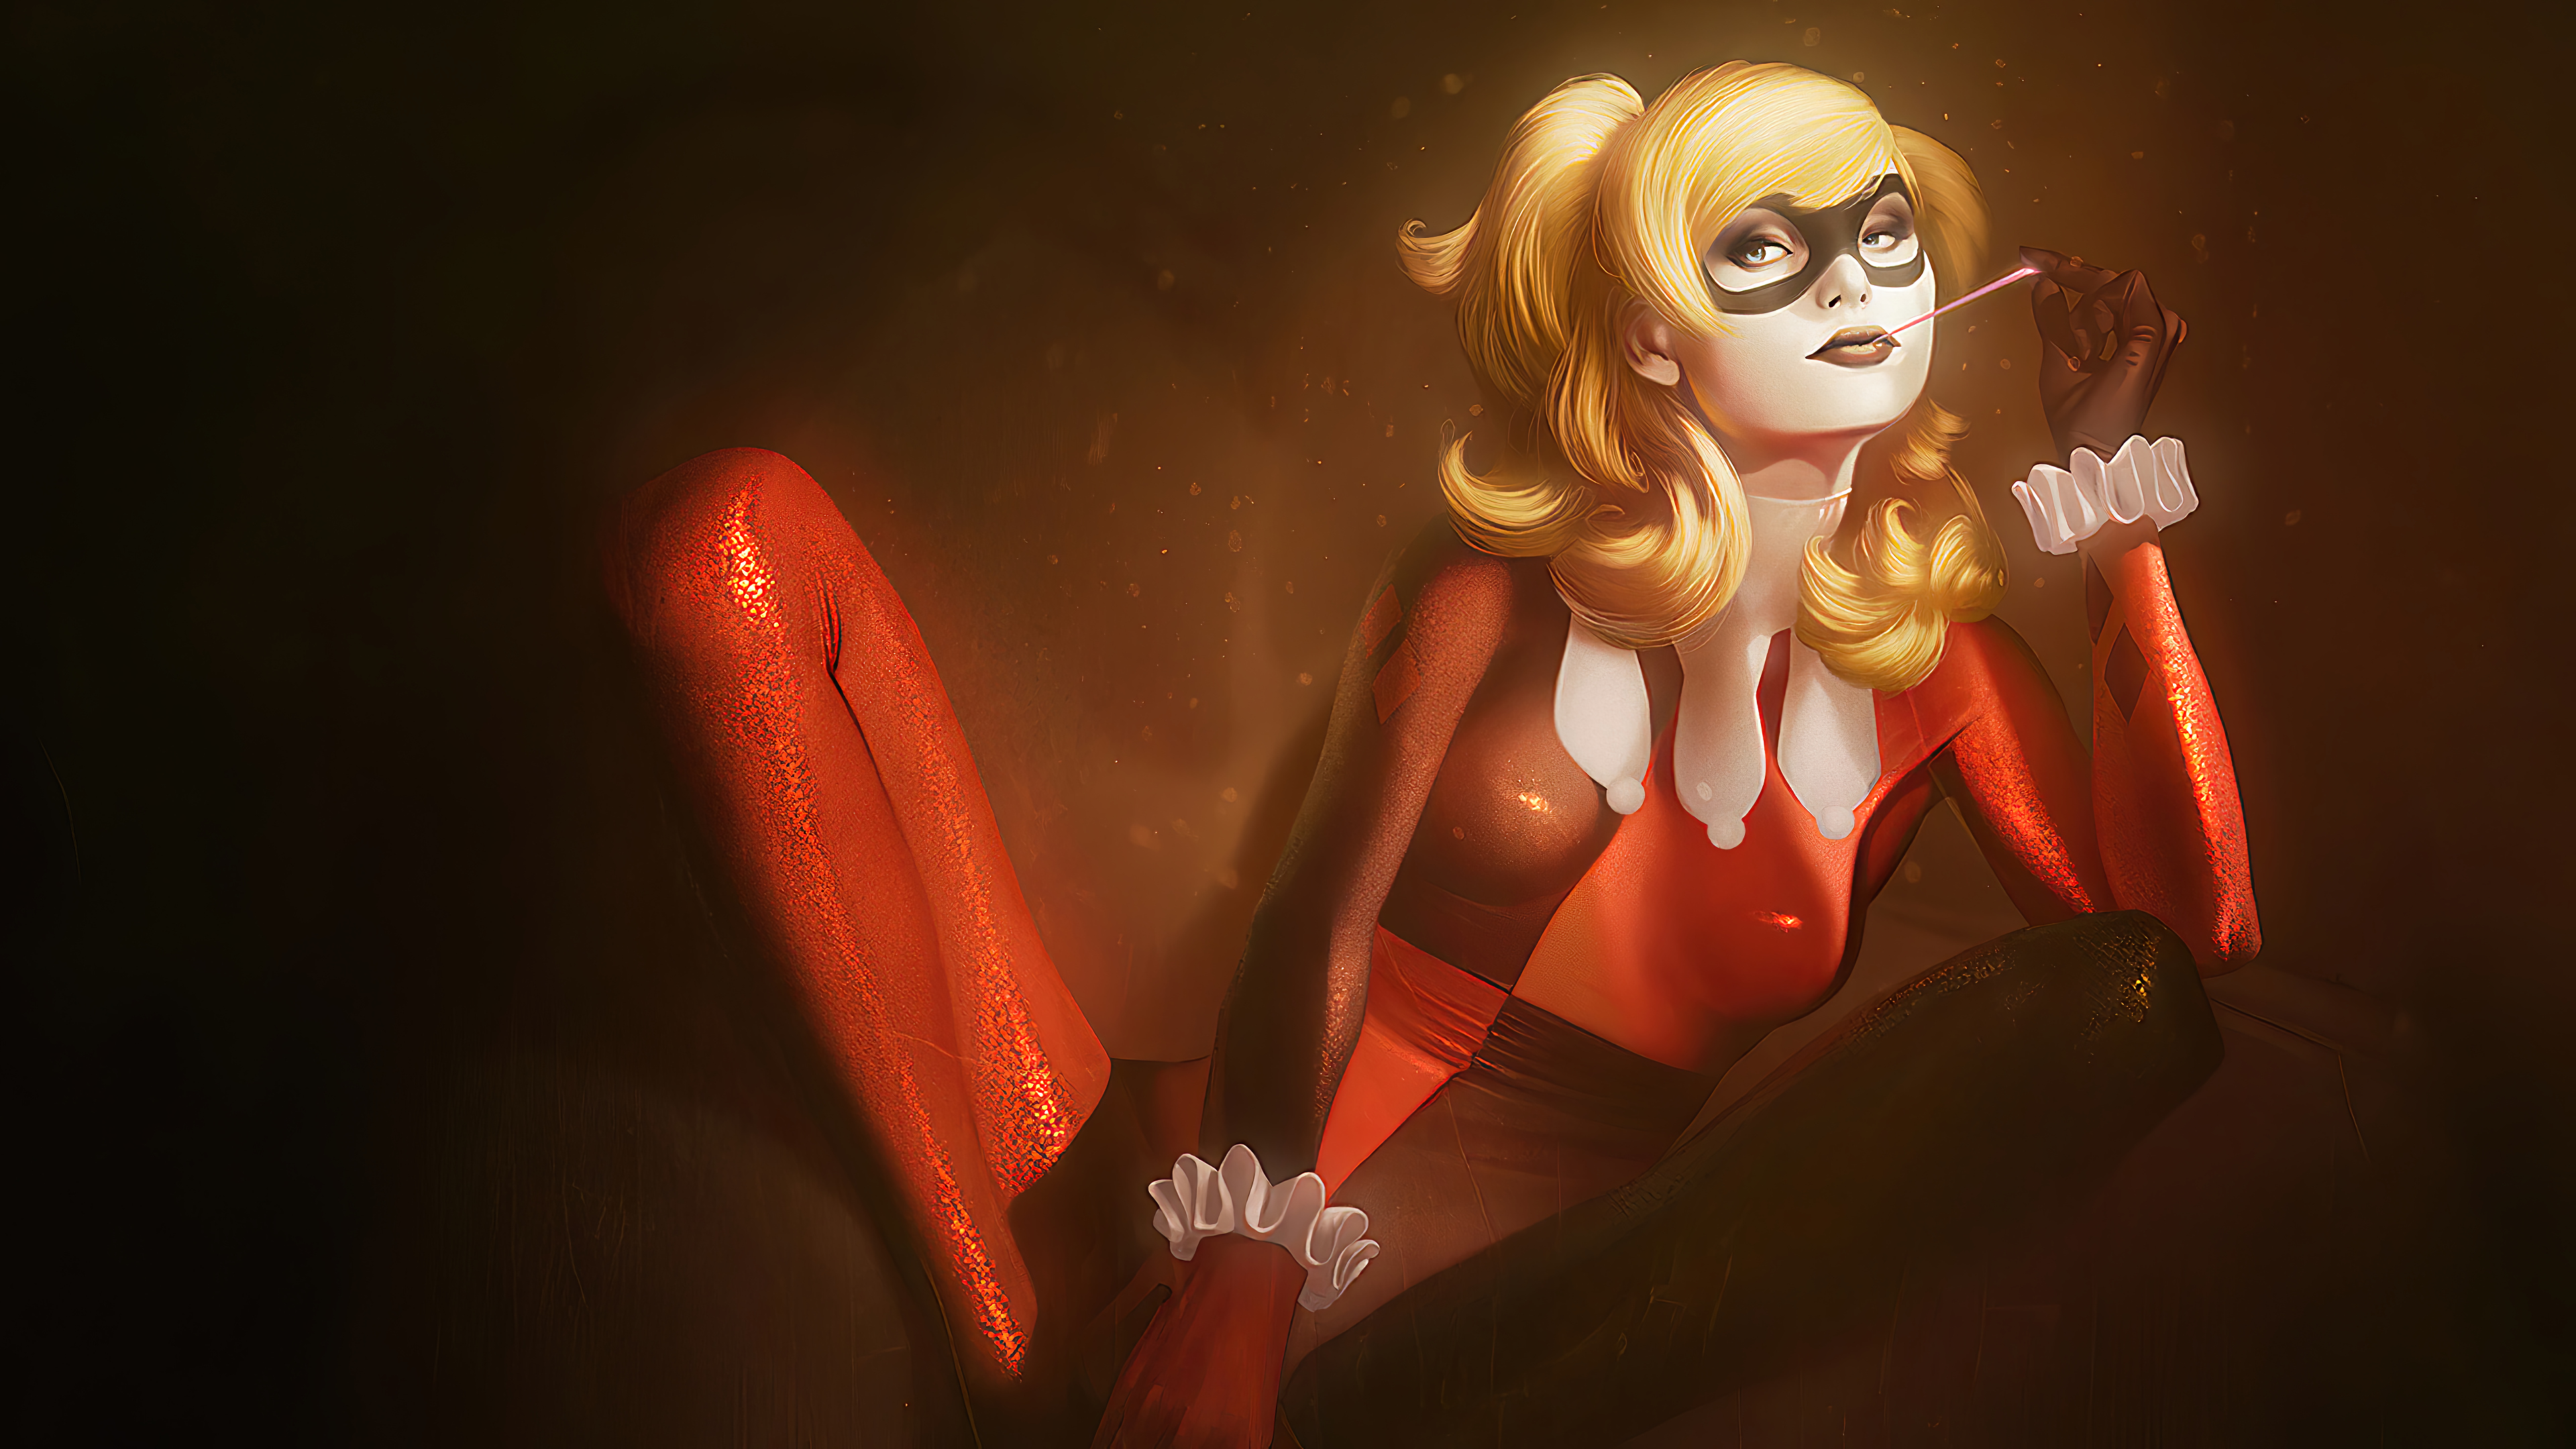 Harley Quinn Wallpaper 4k 3840x2160 Download Hd Wallpaper Wallpapertip